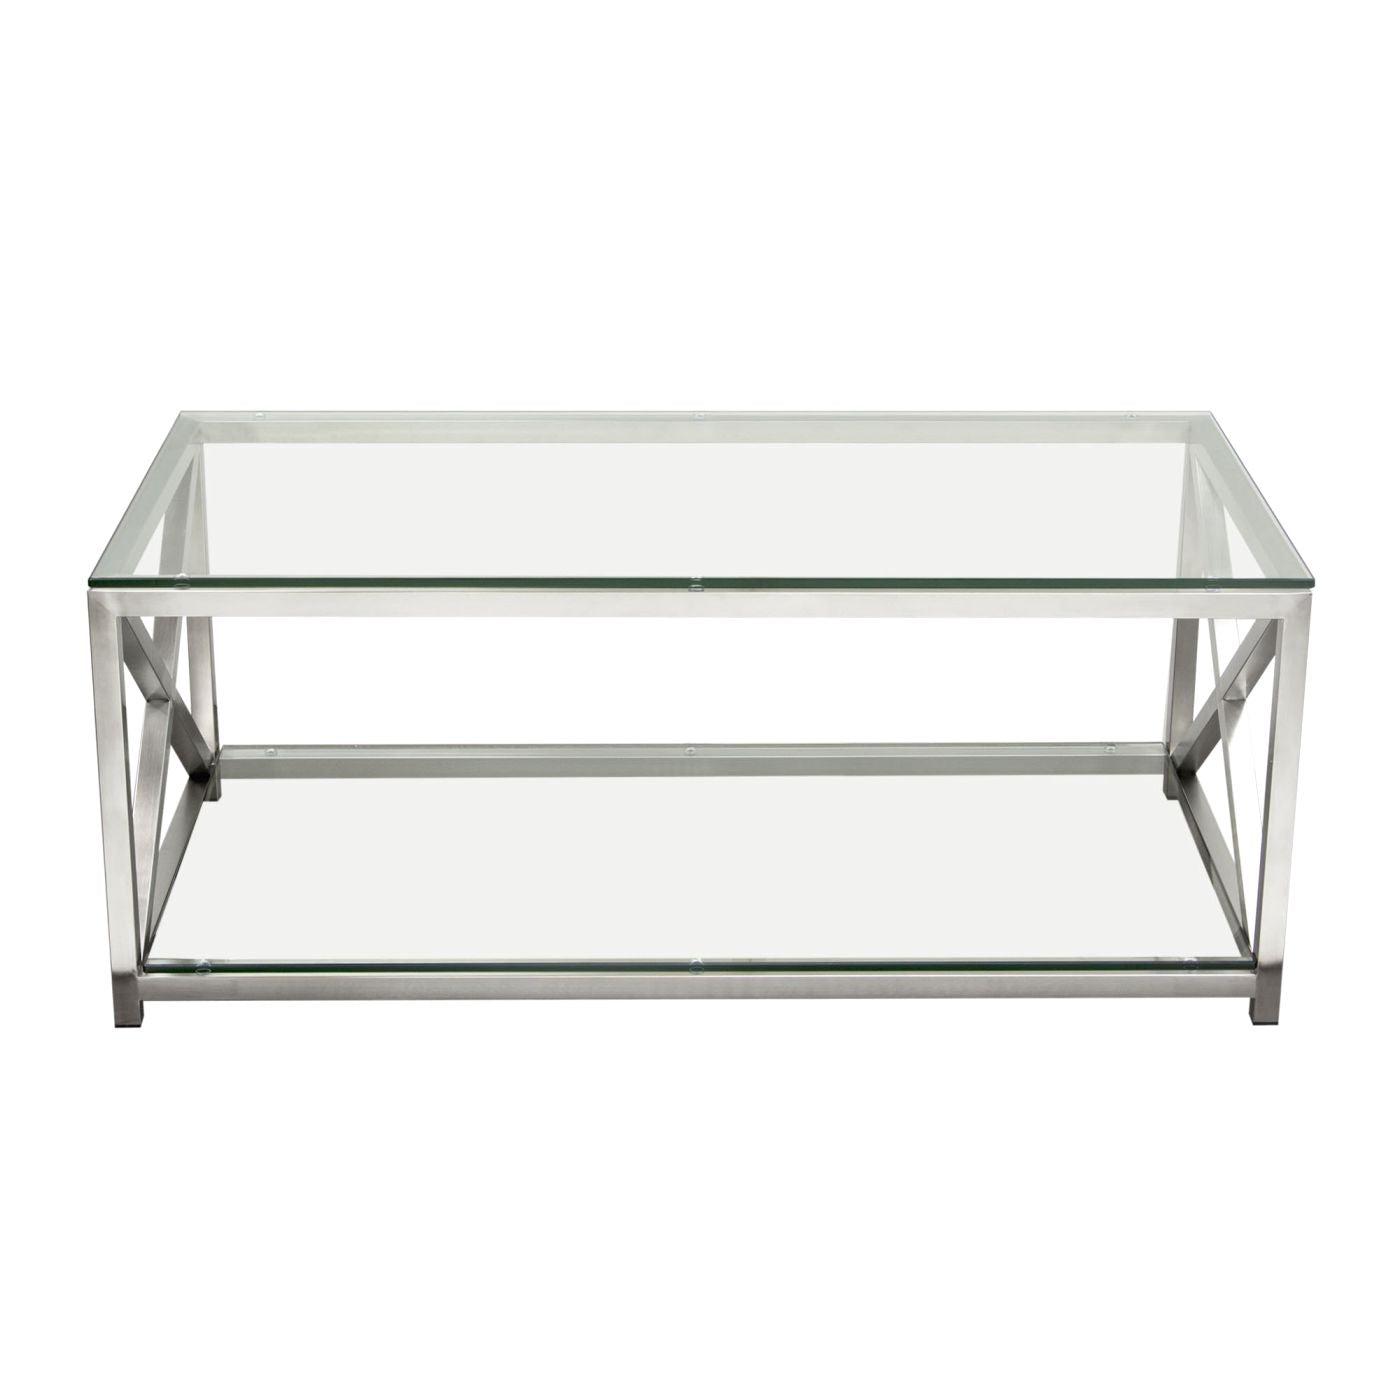 X Factor Cocktail Table With Clear Glass Top U0026 Shelf Brushed Stainless  Steel Frame Coffee ...